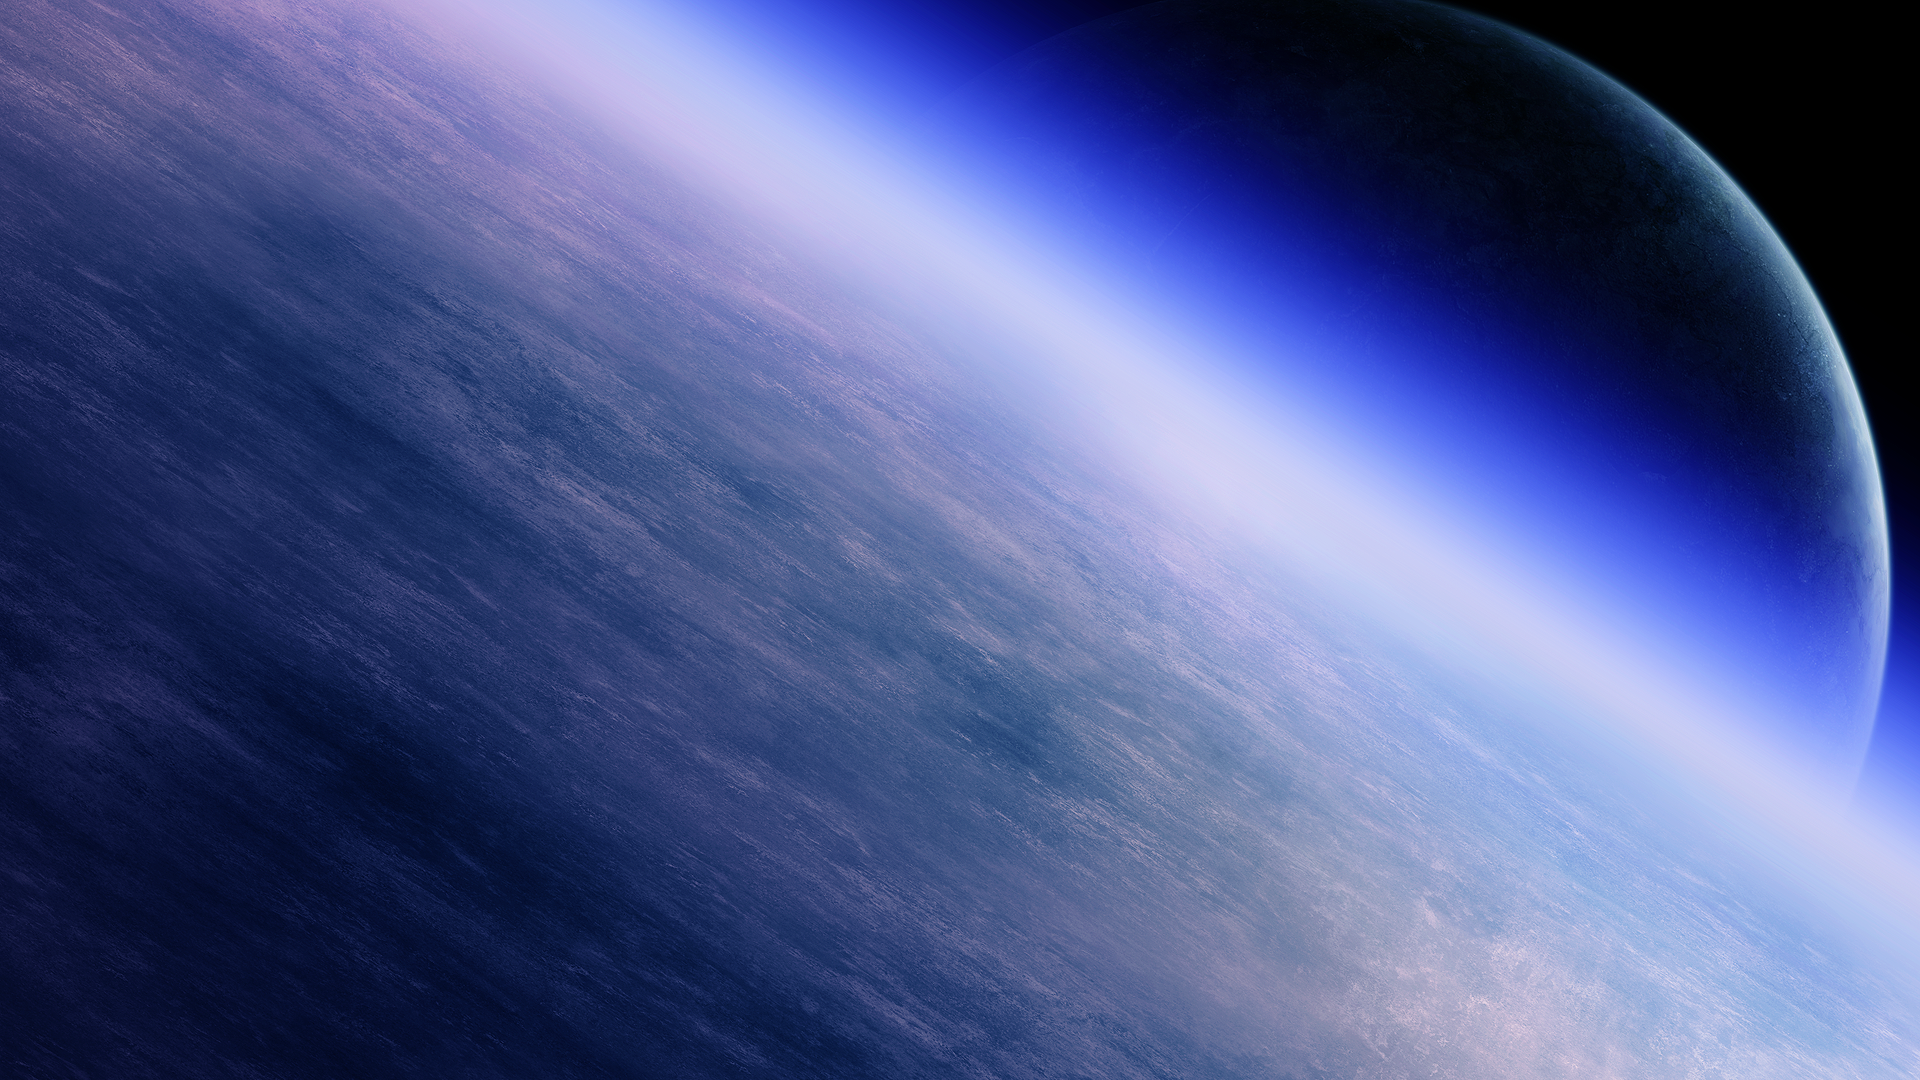 this resolution theme space HD Wallpaper   Space Planets 972802 1920x1080